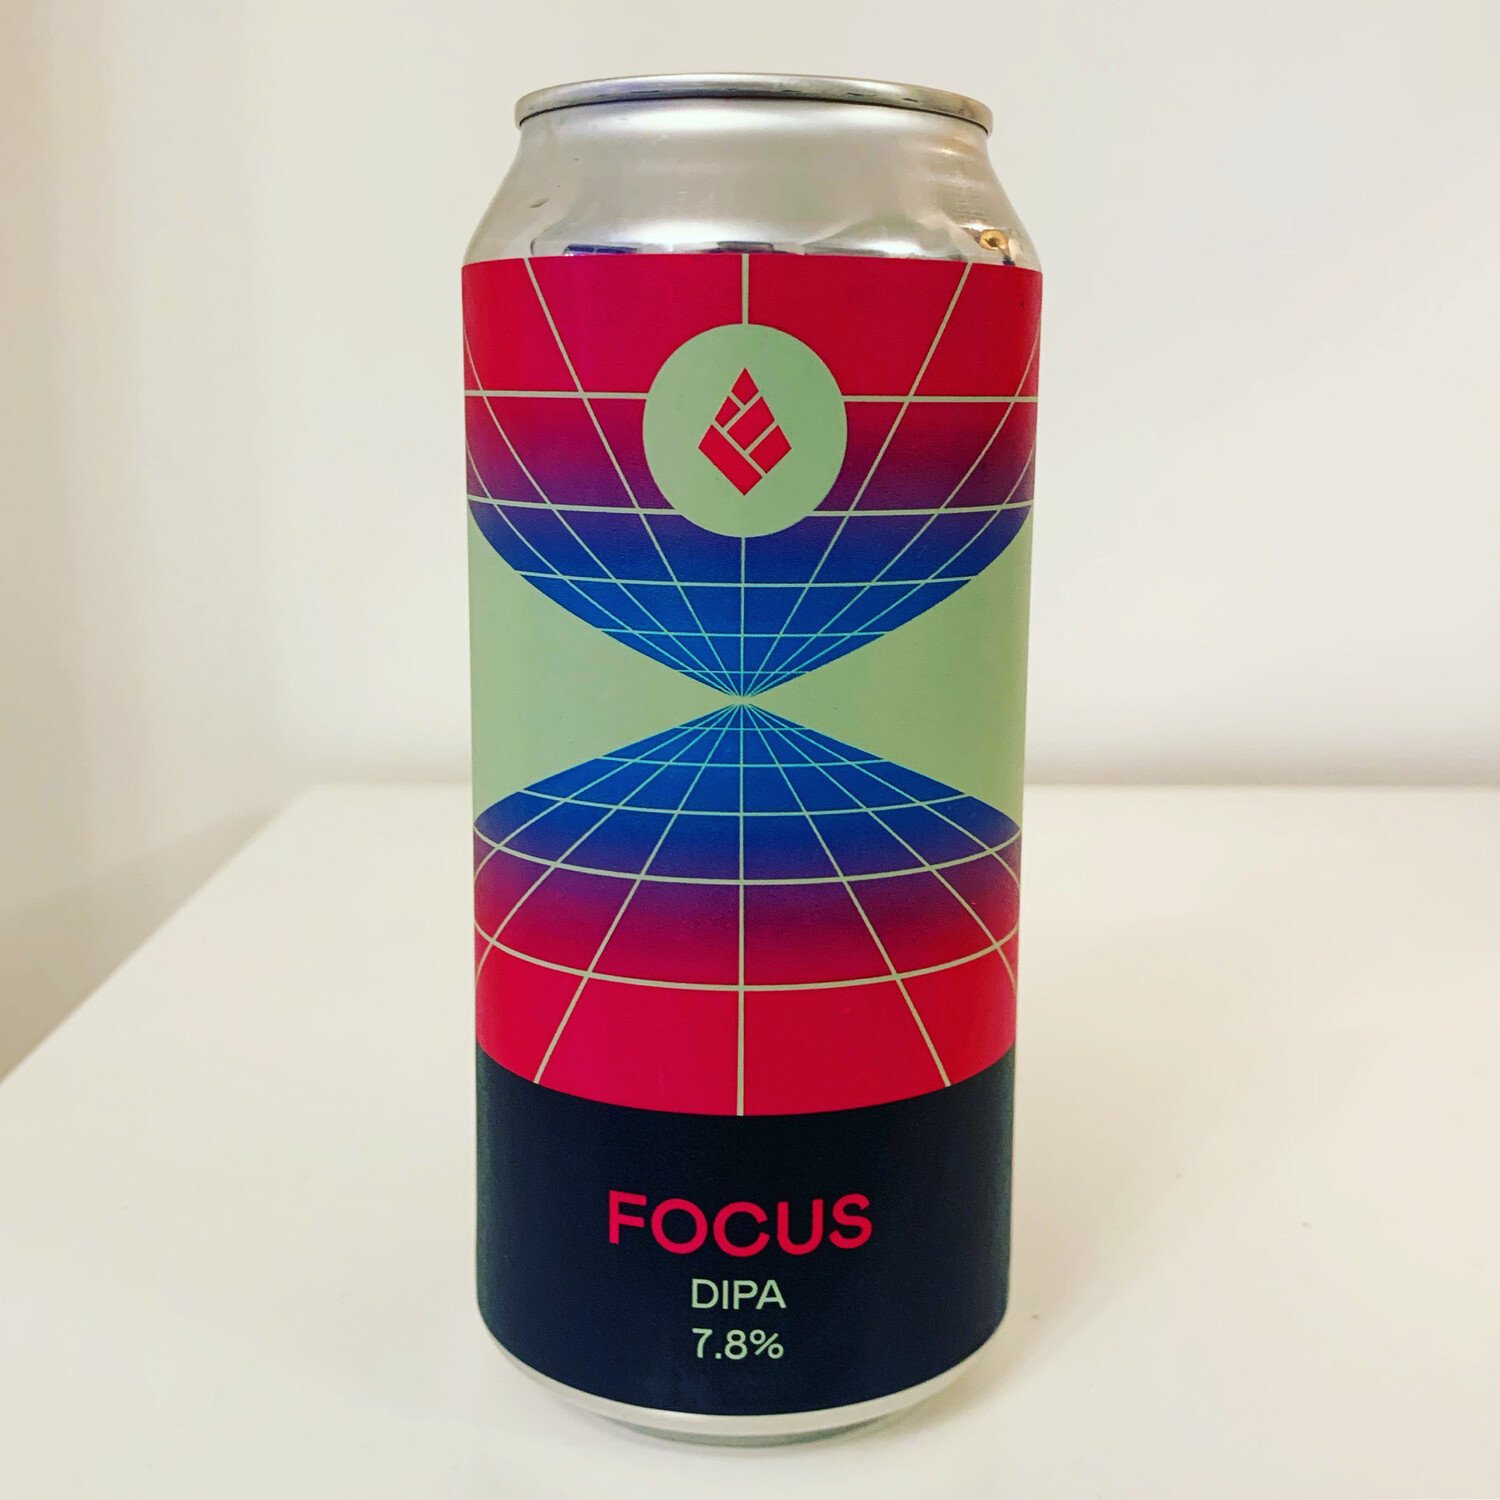 NEW Drop Project 'Focus' DIPA 440ml - 7.8%